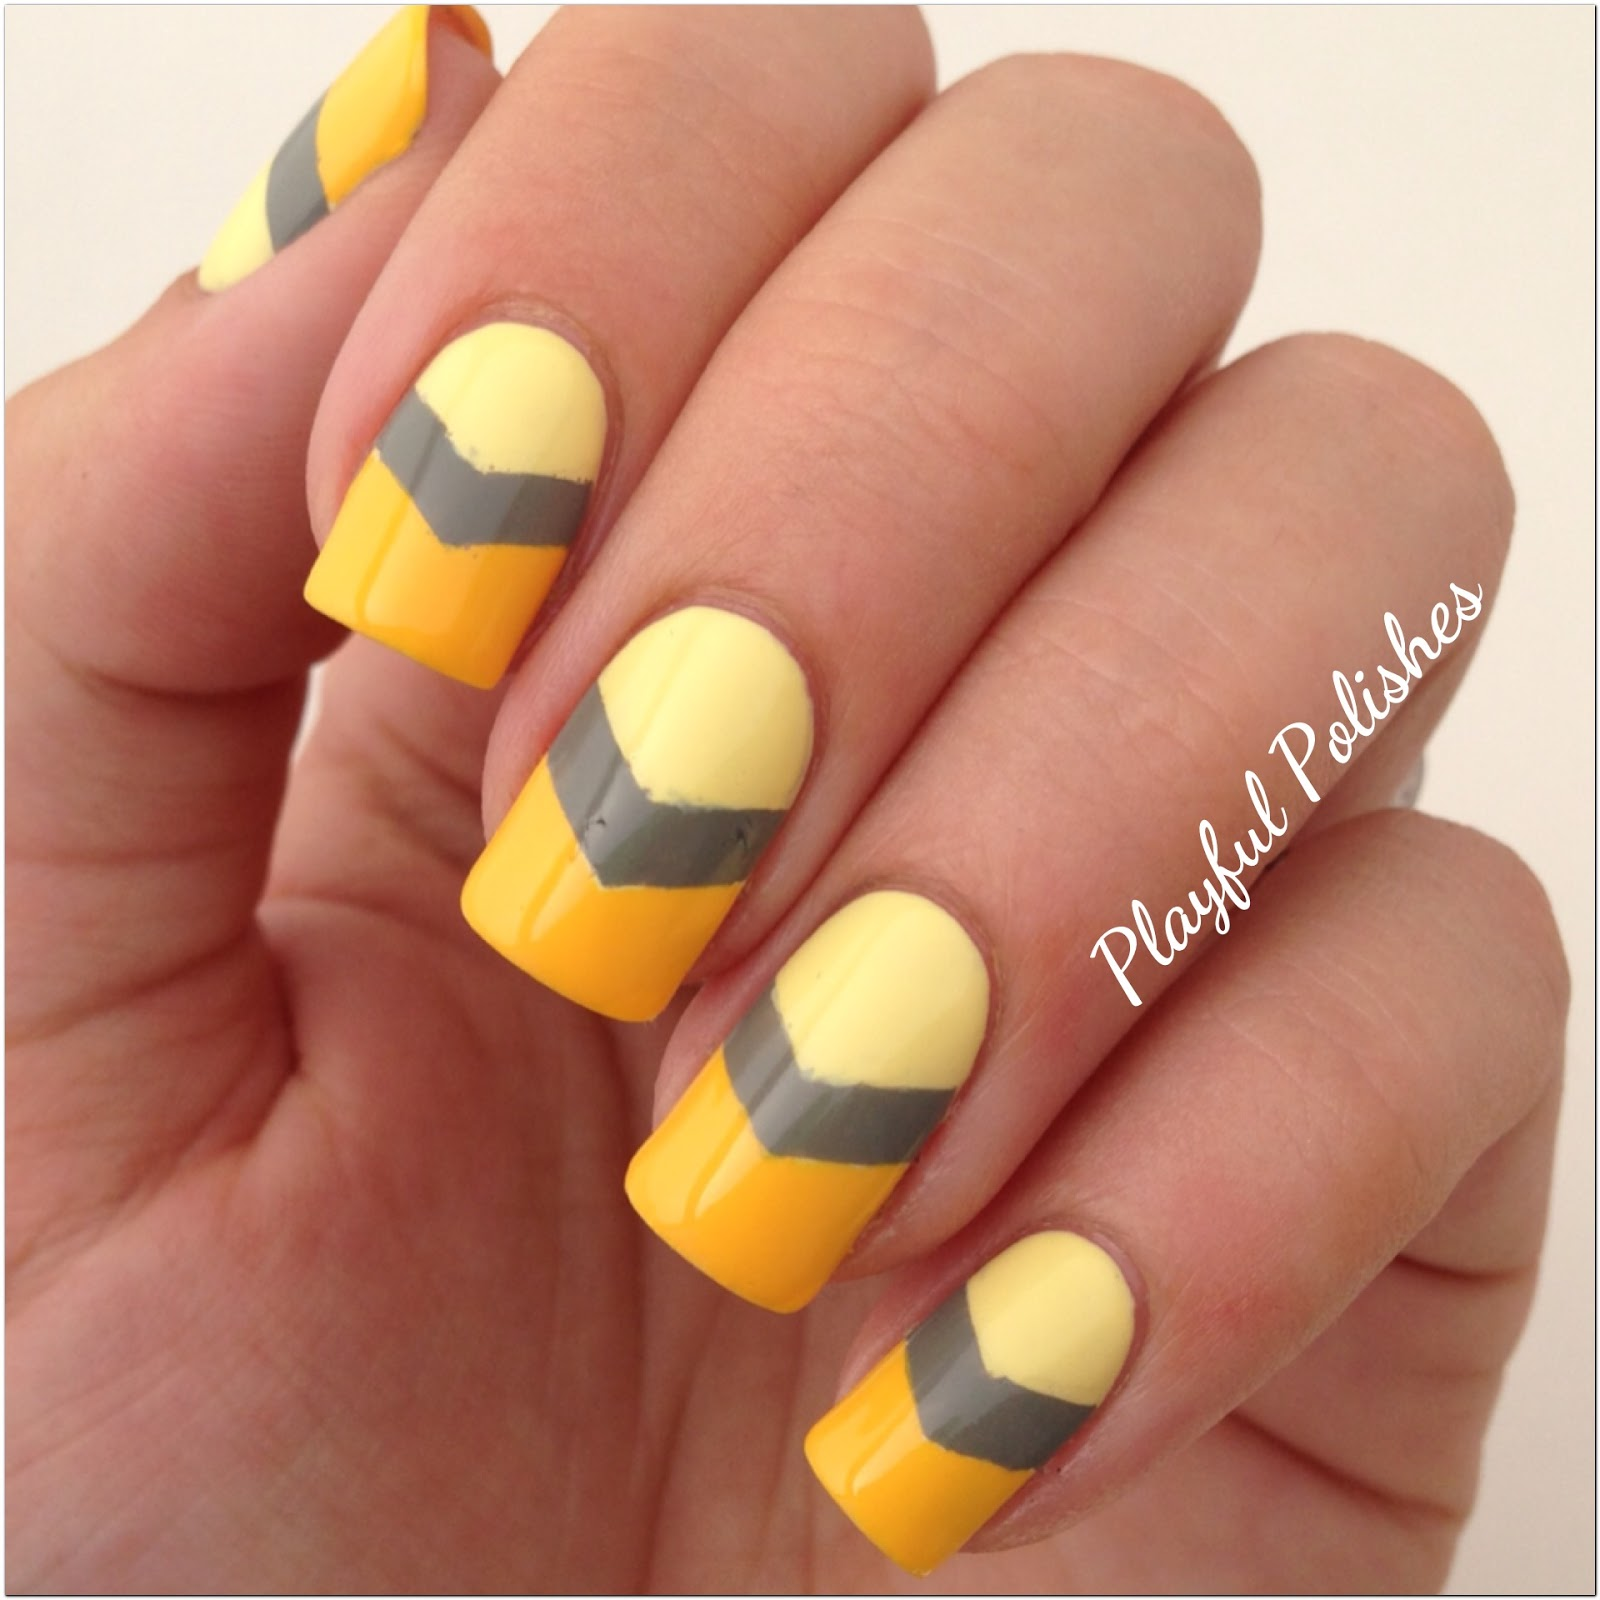 Playful polishes 31 day nail art challenge yellow nails the colors i used for todays design were silky polish tussah sunglow opi suzi takes the wheel and julep catrina i chose to use grey with the yellow prinsesfo Gallery